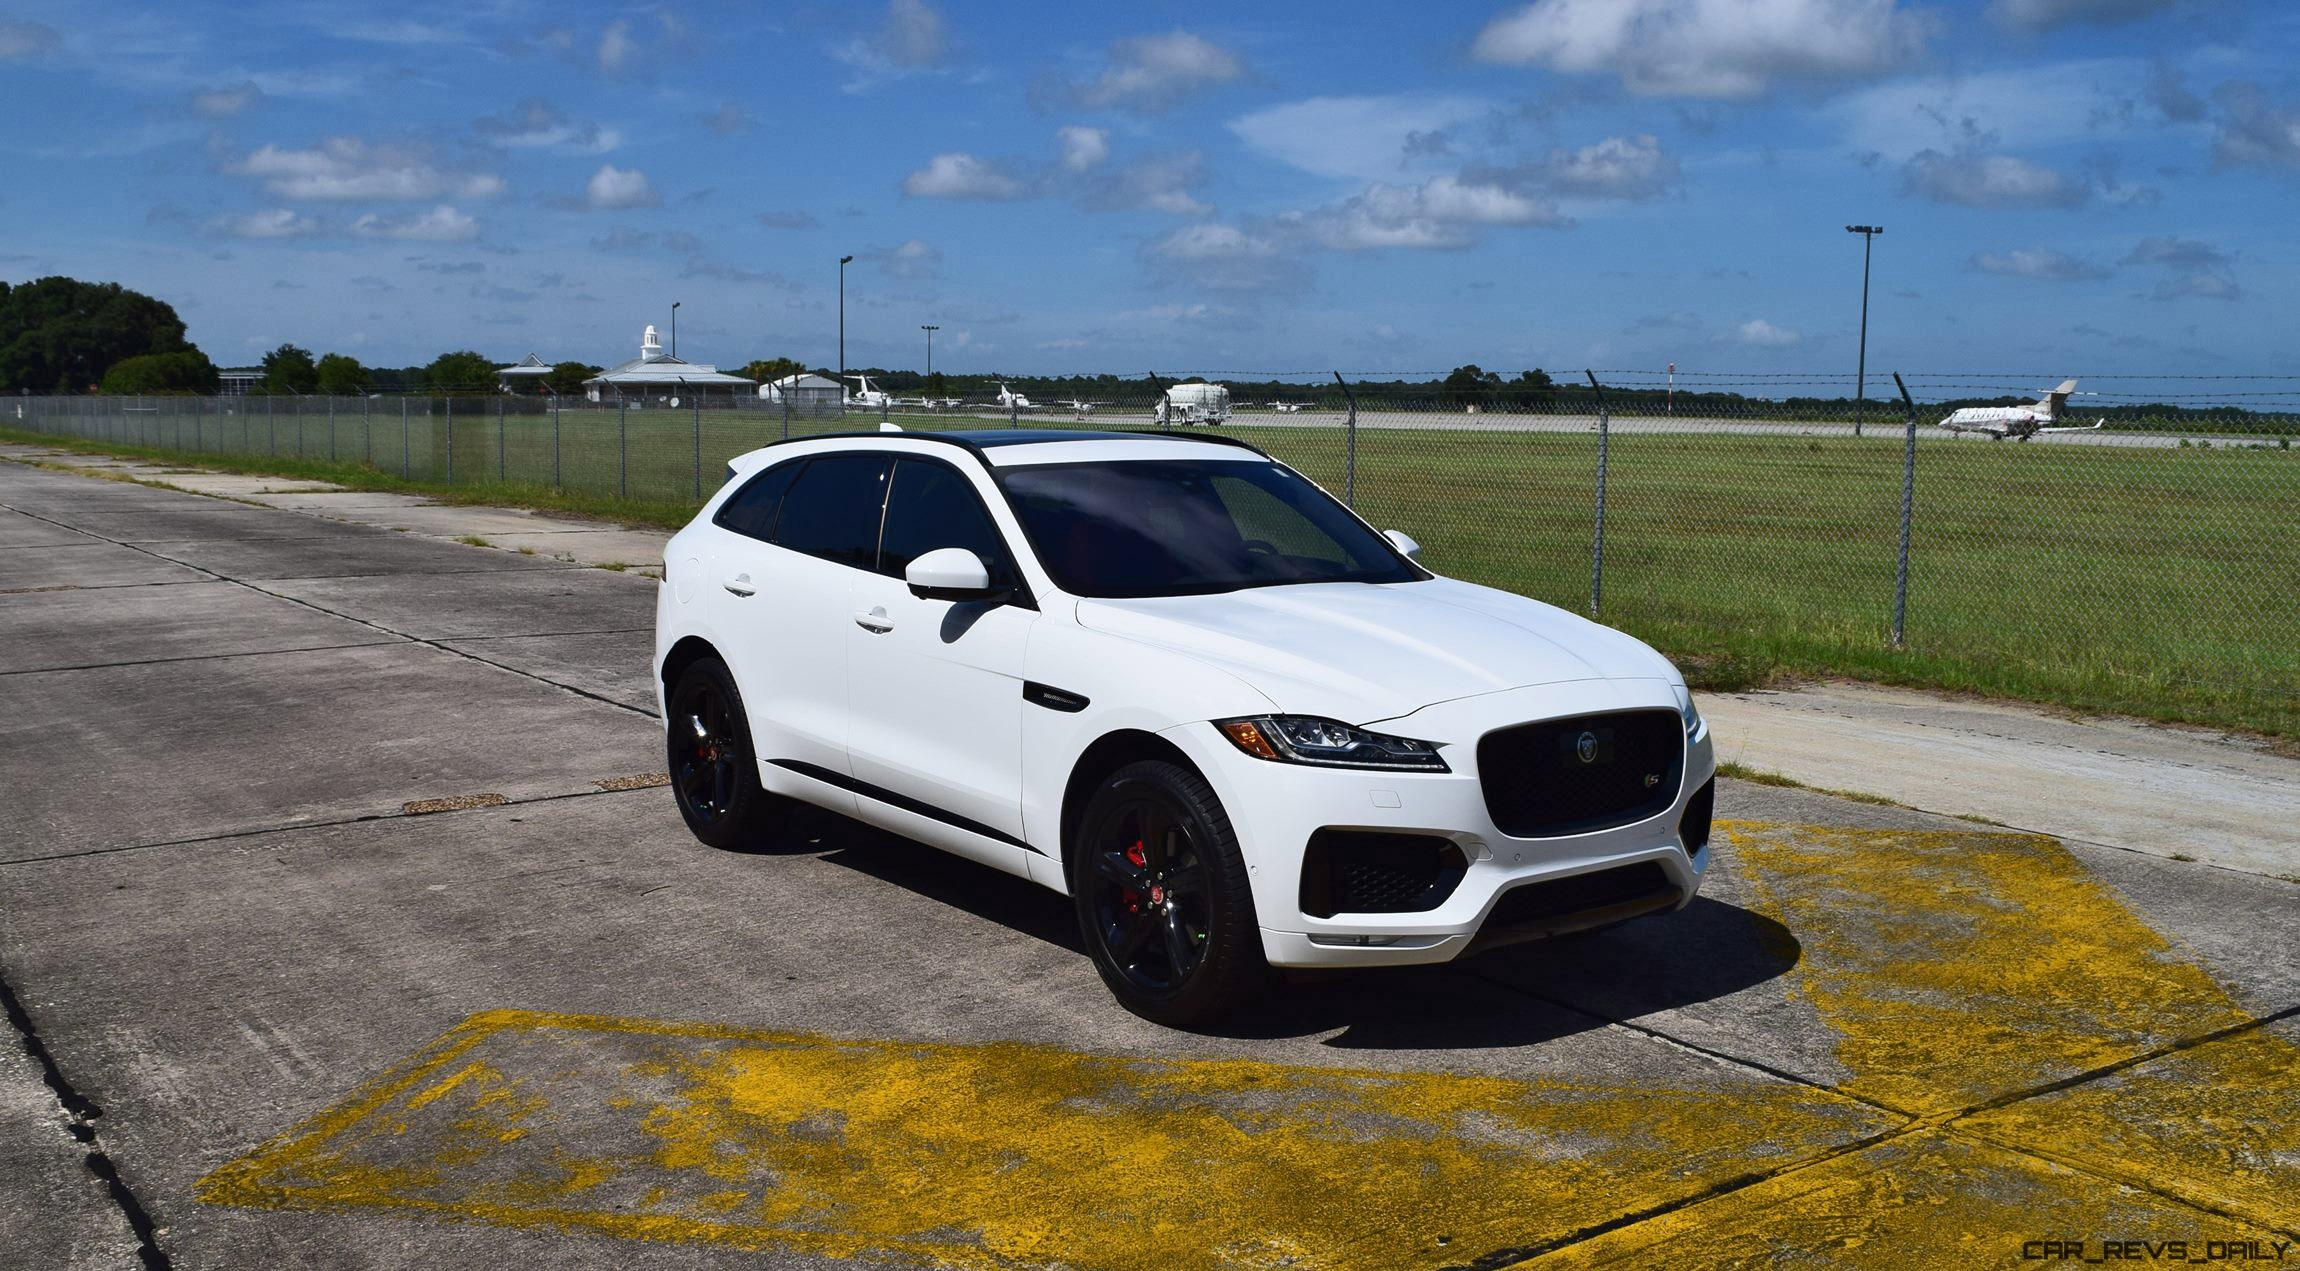 2017 Jaguar F Pace S Usa First Drive Review Video And 140 All New Photos Car Revs